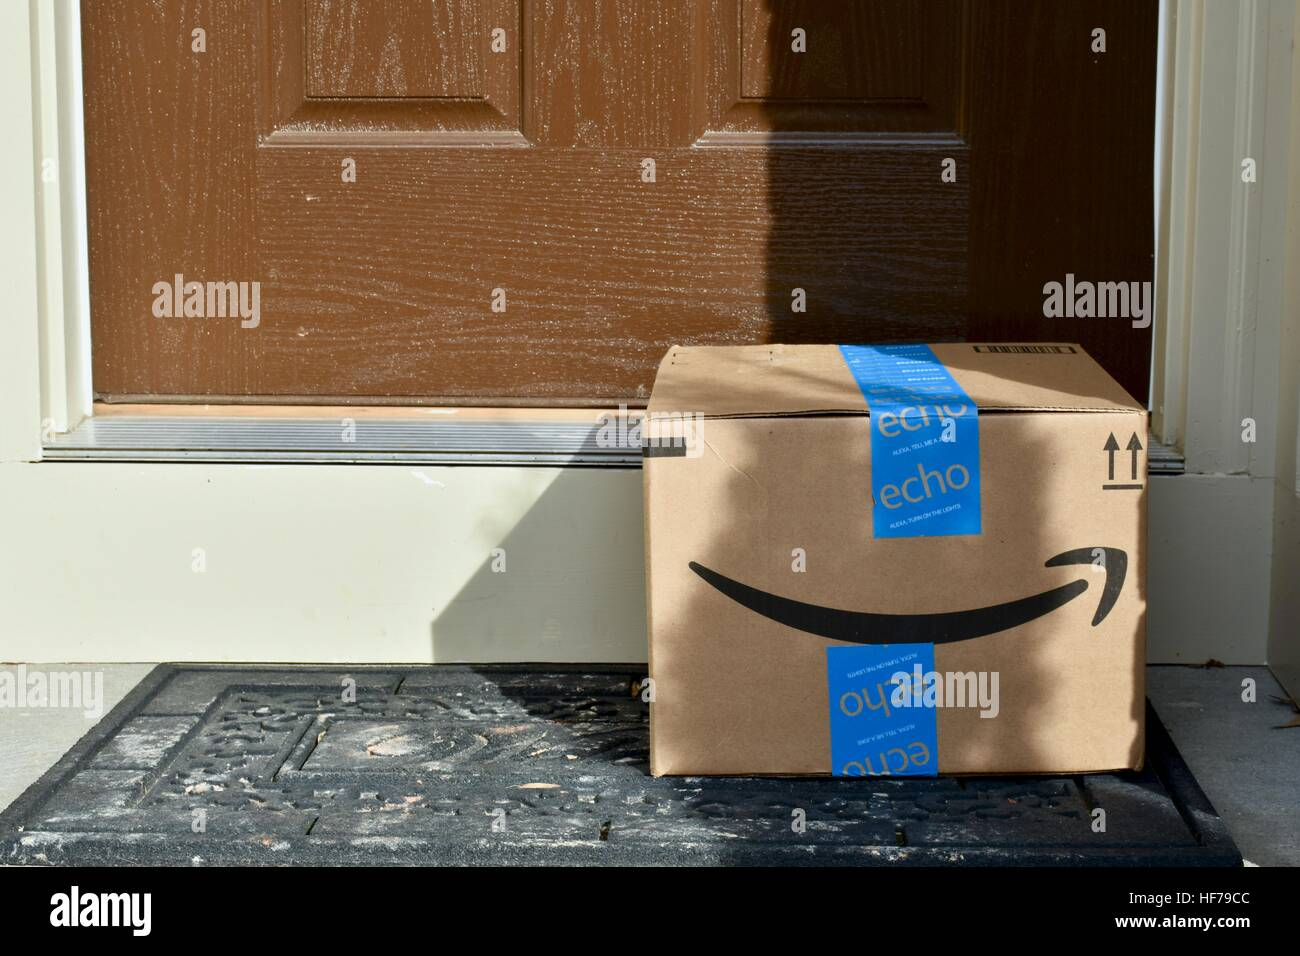 An Amazon Prime package delivered to the front door of a home - Stock Image & Amazon Package Delivered Stock Photos \u0026 Amazon Package Delivered ...